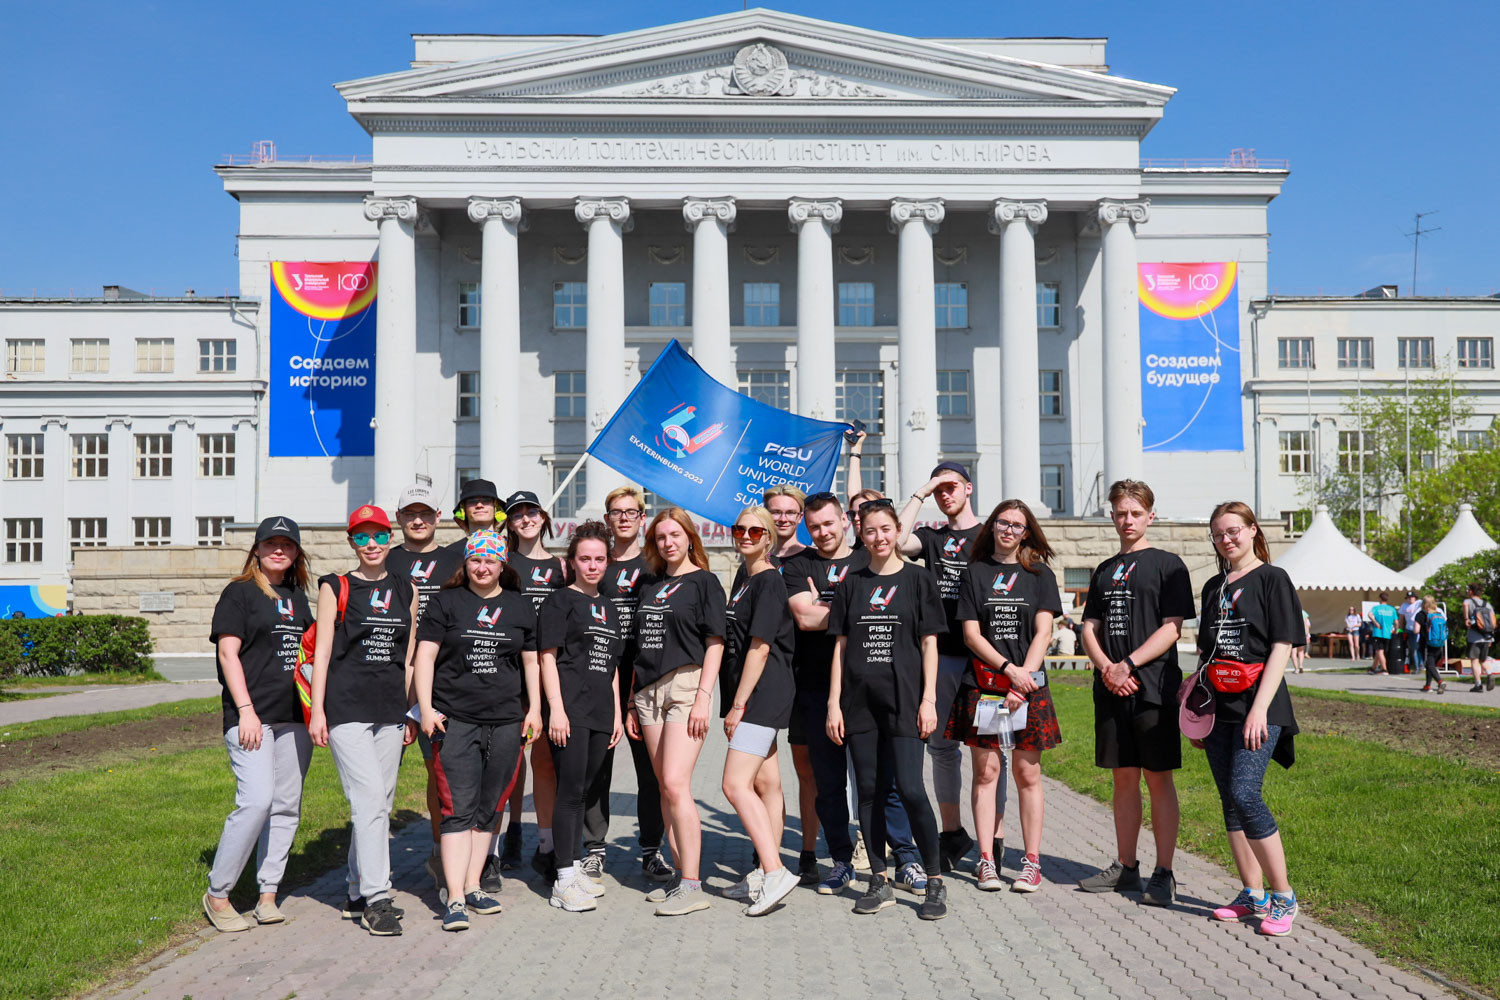 Yekaterinburg 2023 organisers hoping to recruit more than 11,000 people for volunteer programme